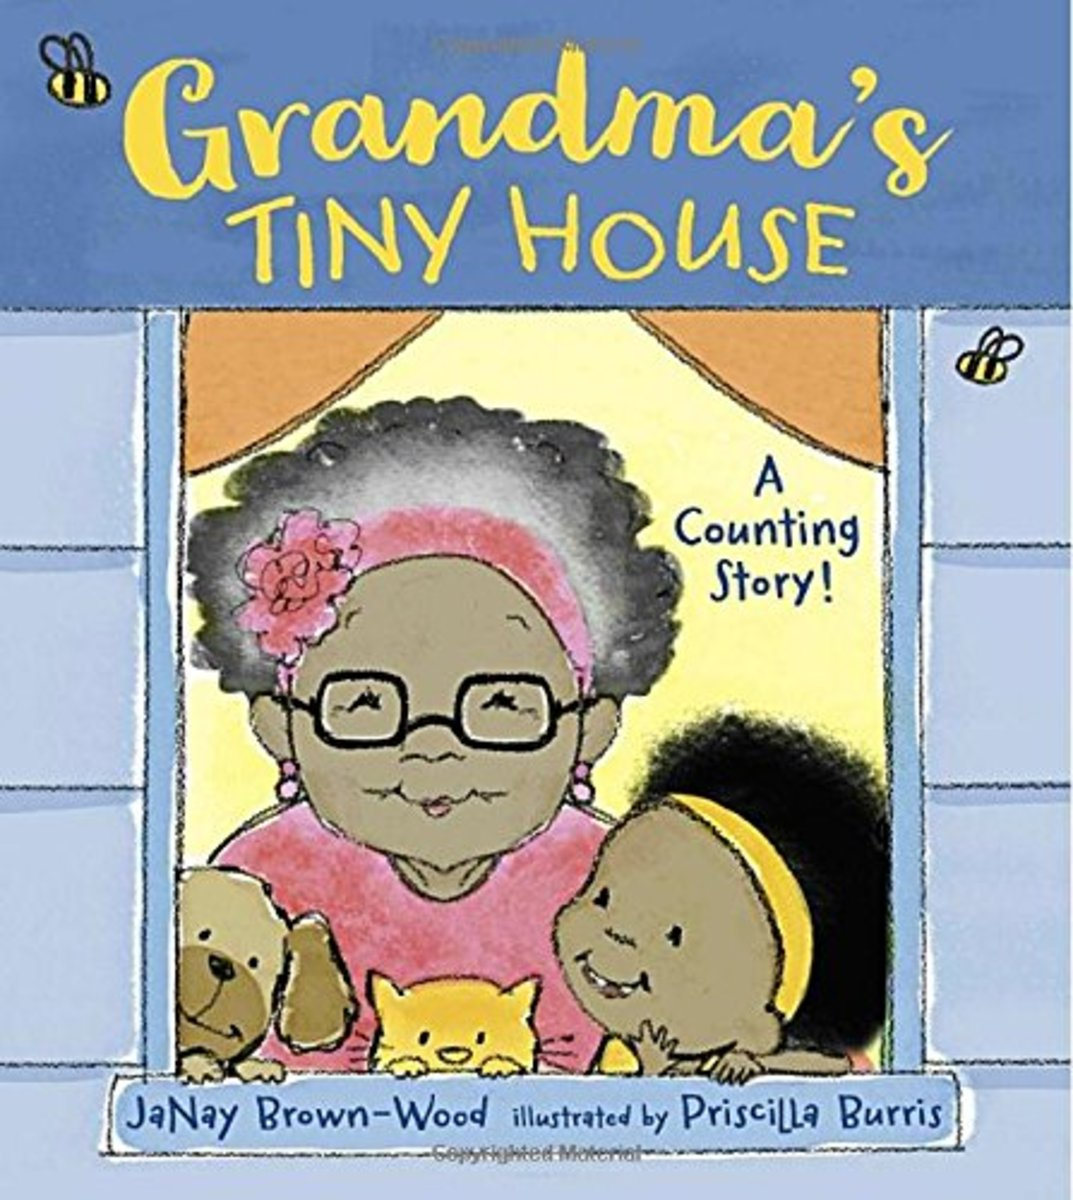 Grandma's Tiny House: A Counting Story! by JaNay Brown-Wood